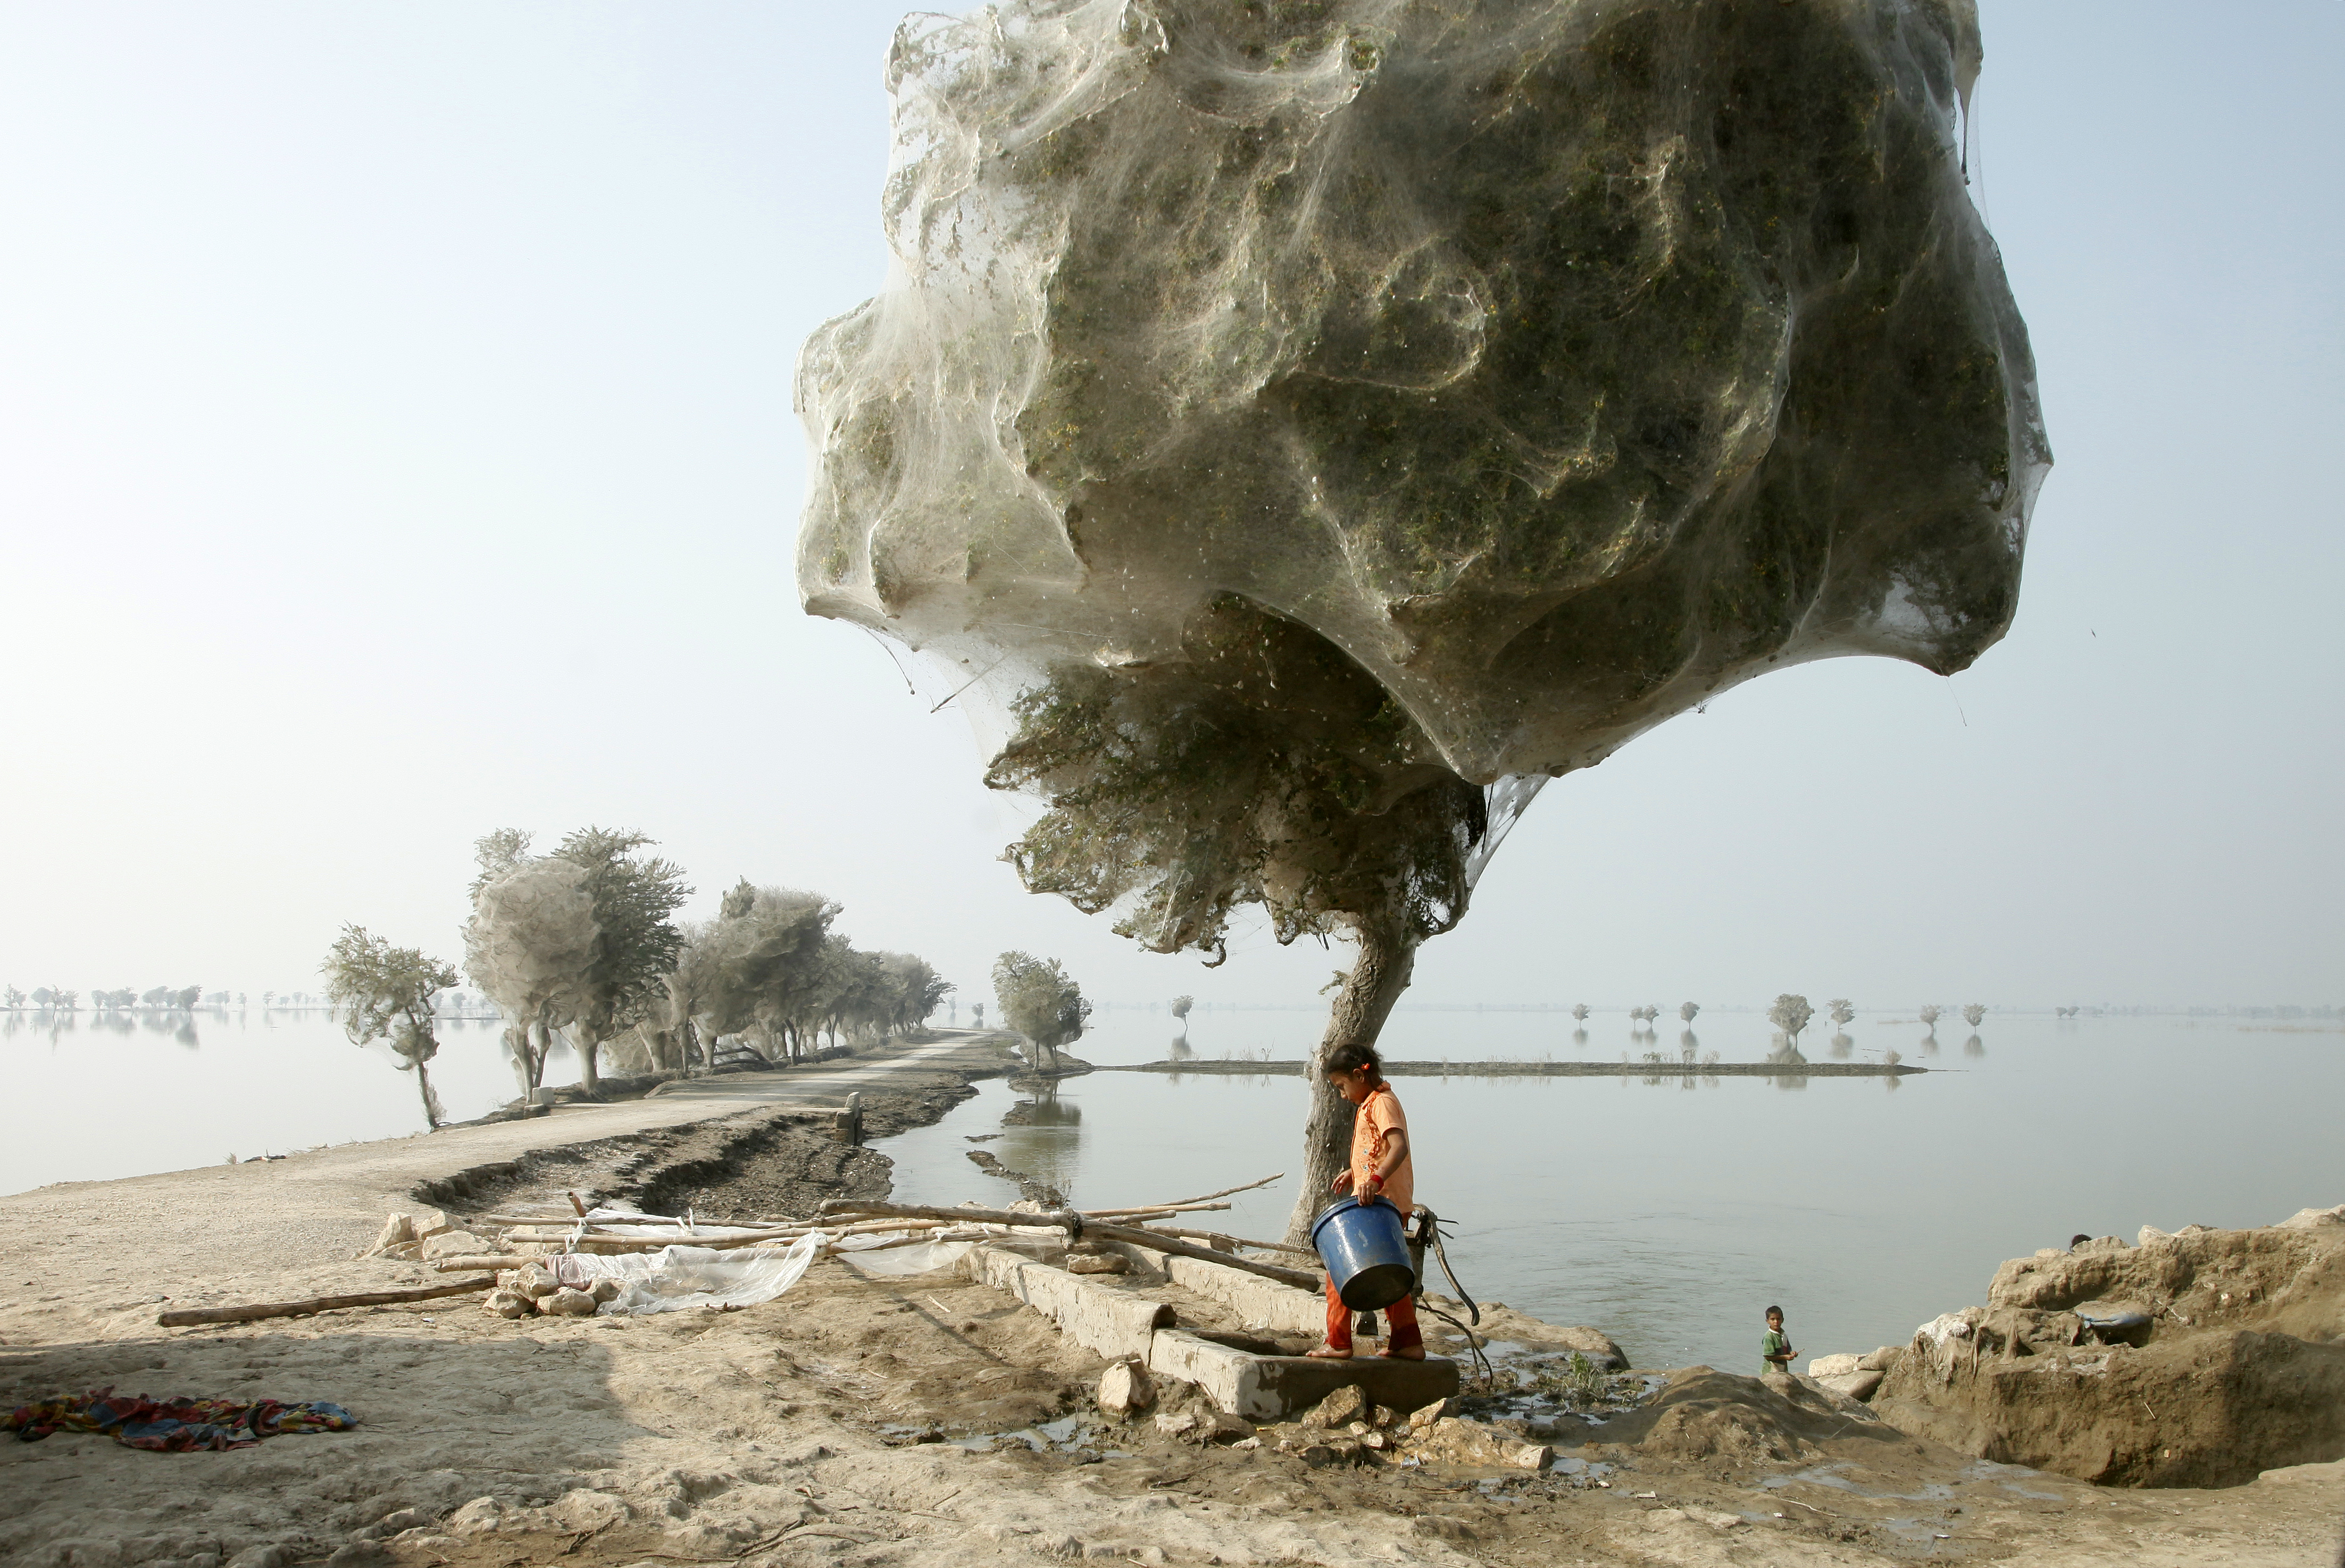 trees_cocooned_in_spiders_webs_after_flooding_in_sindh_pakistan_55711819421